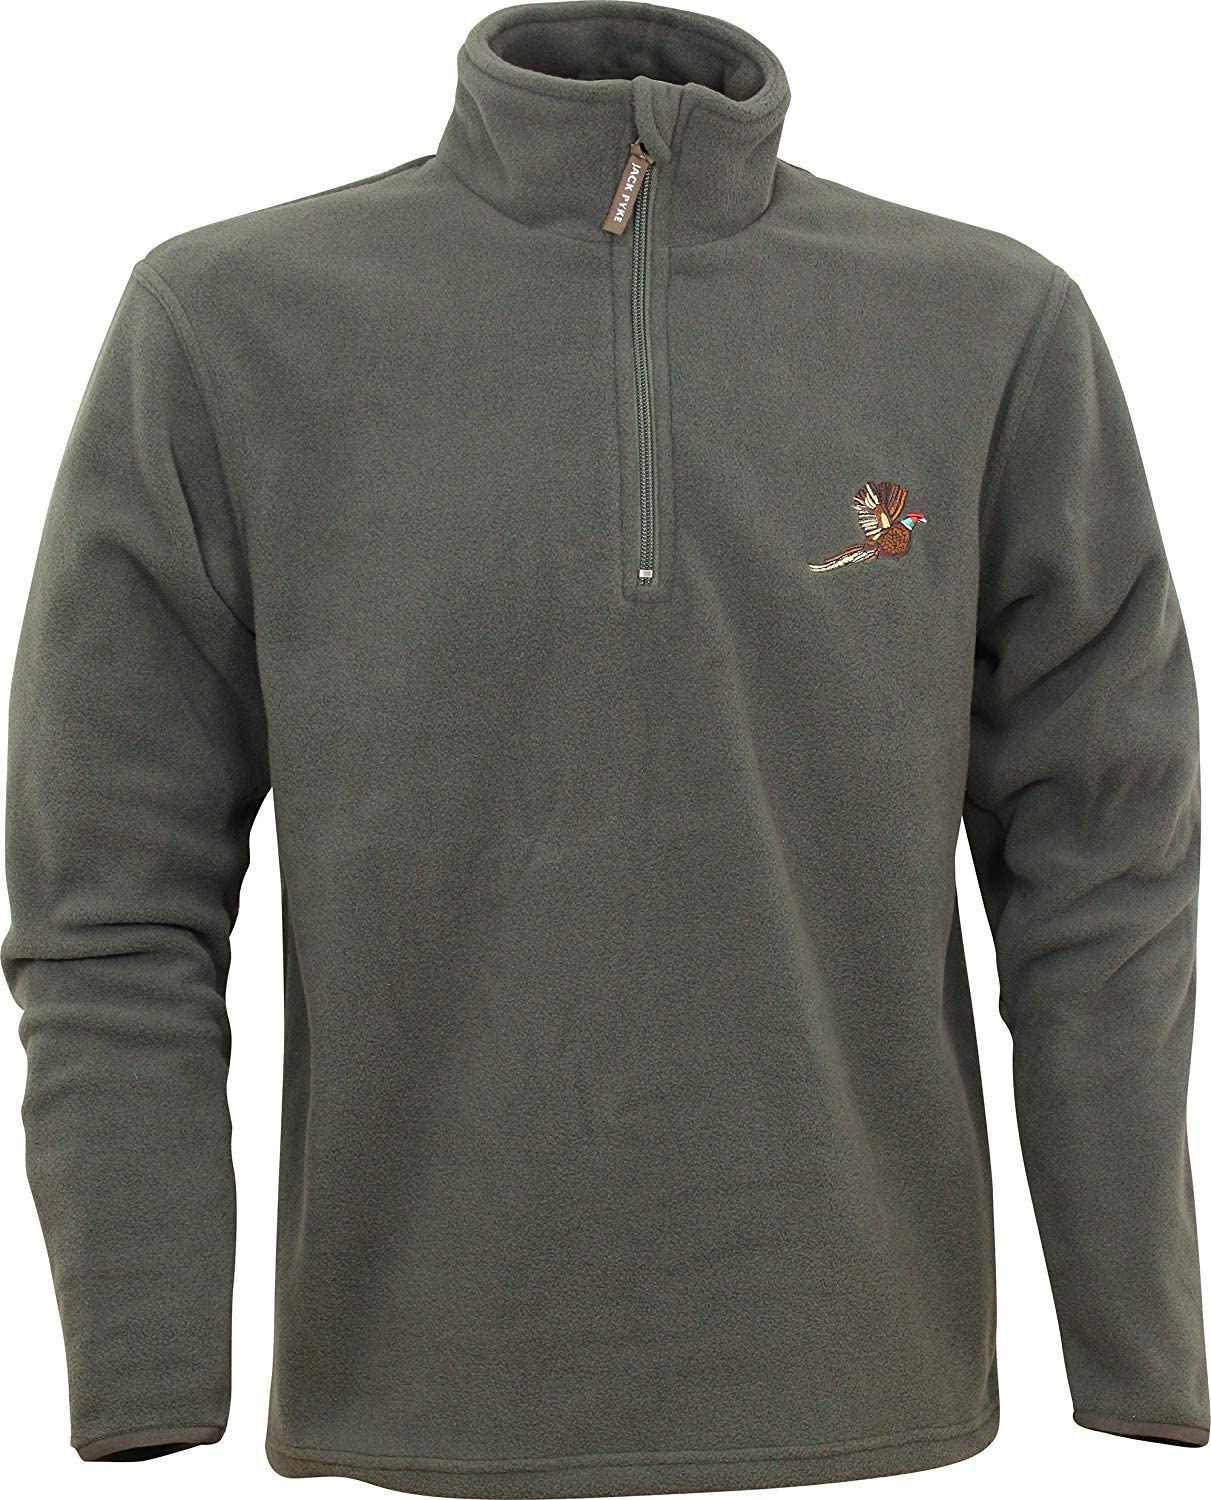 Sherwood Forest Hanford Pheasant Fleece Pullover Olive Country Hunting Shooting